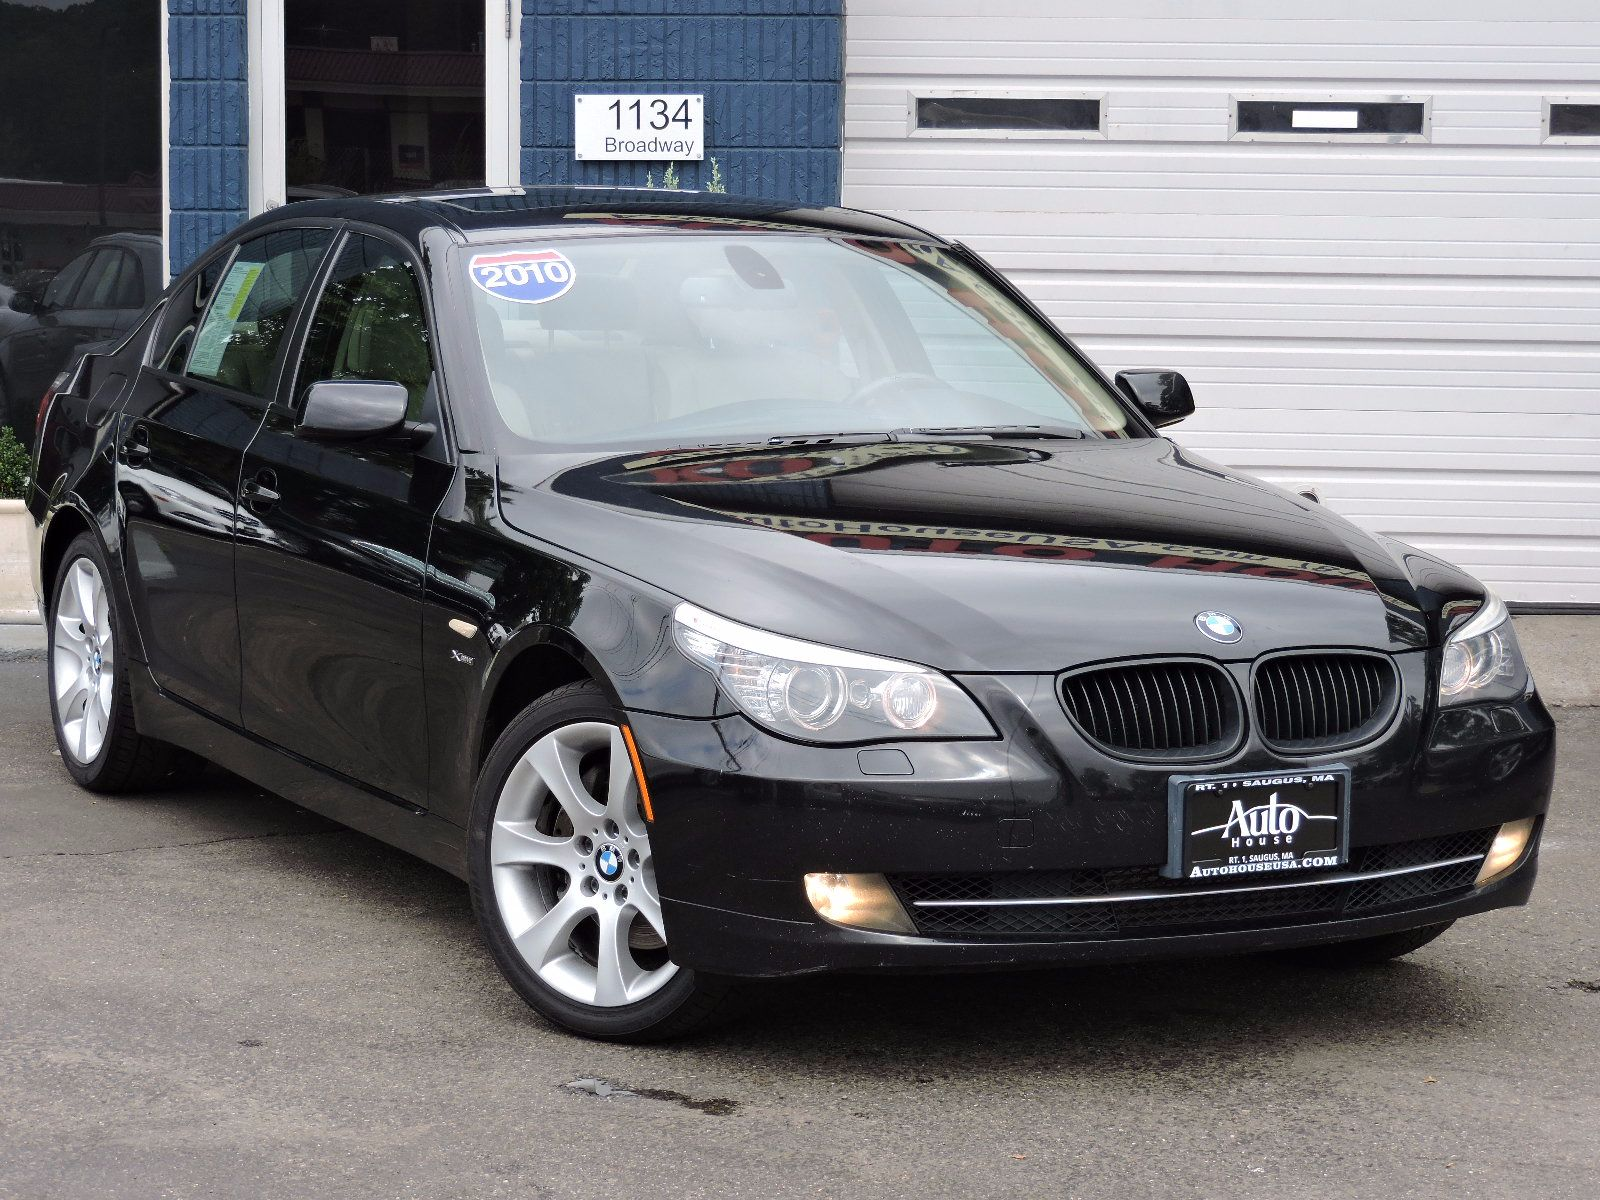 hight resolution of 2010 bmw 535i gt long term update 5 motor trend